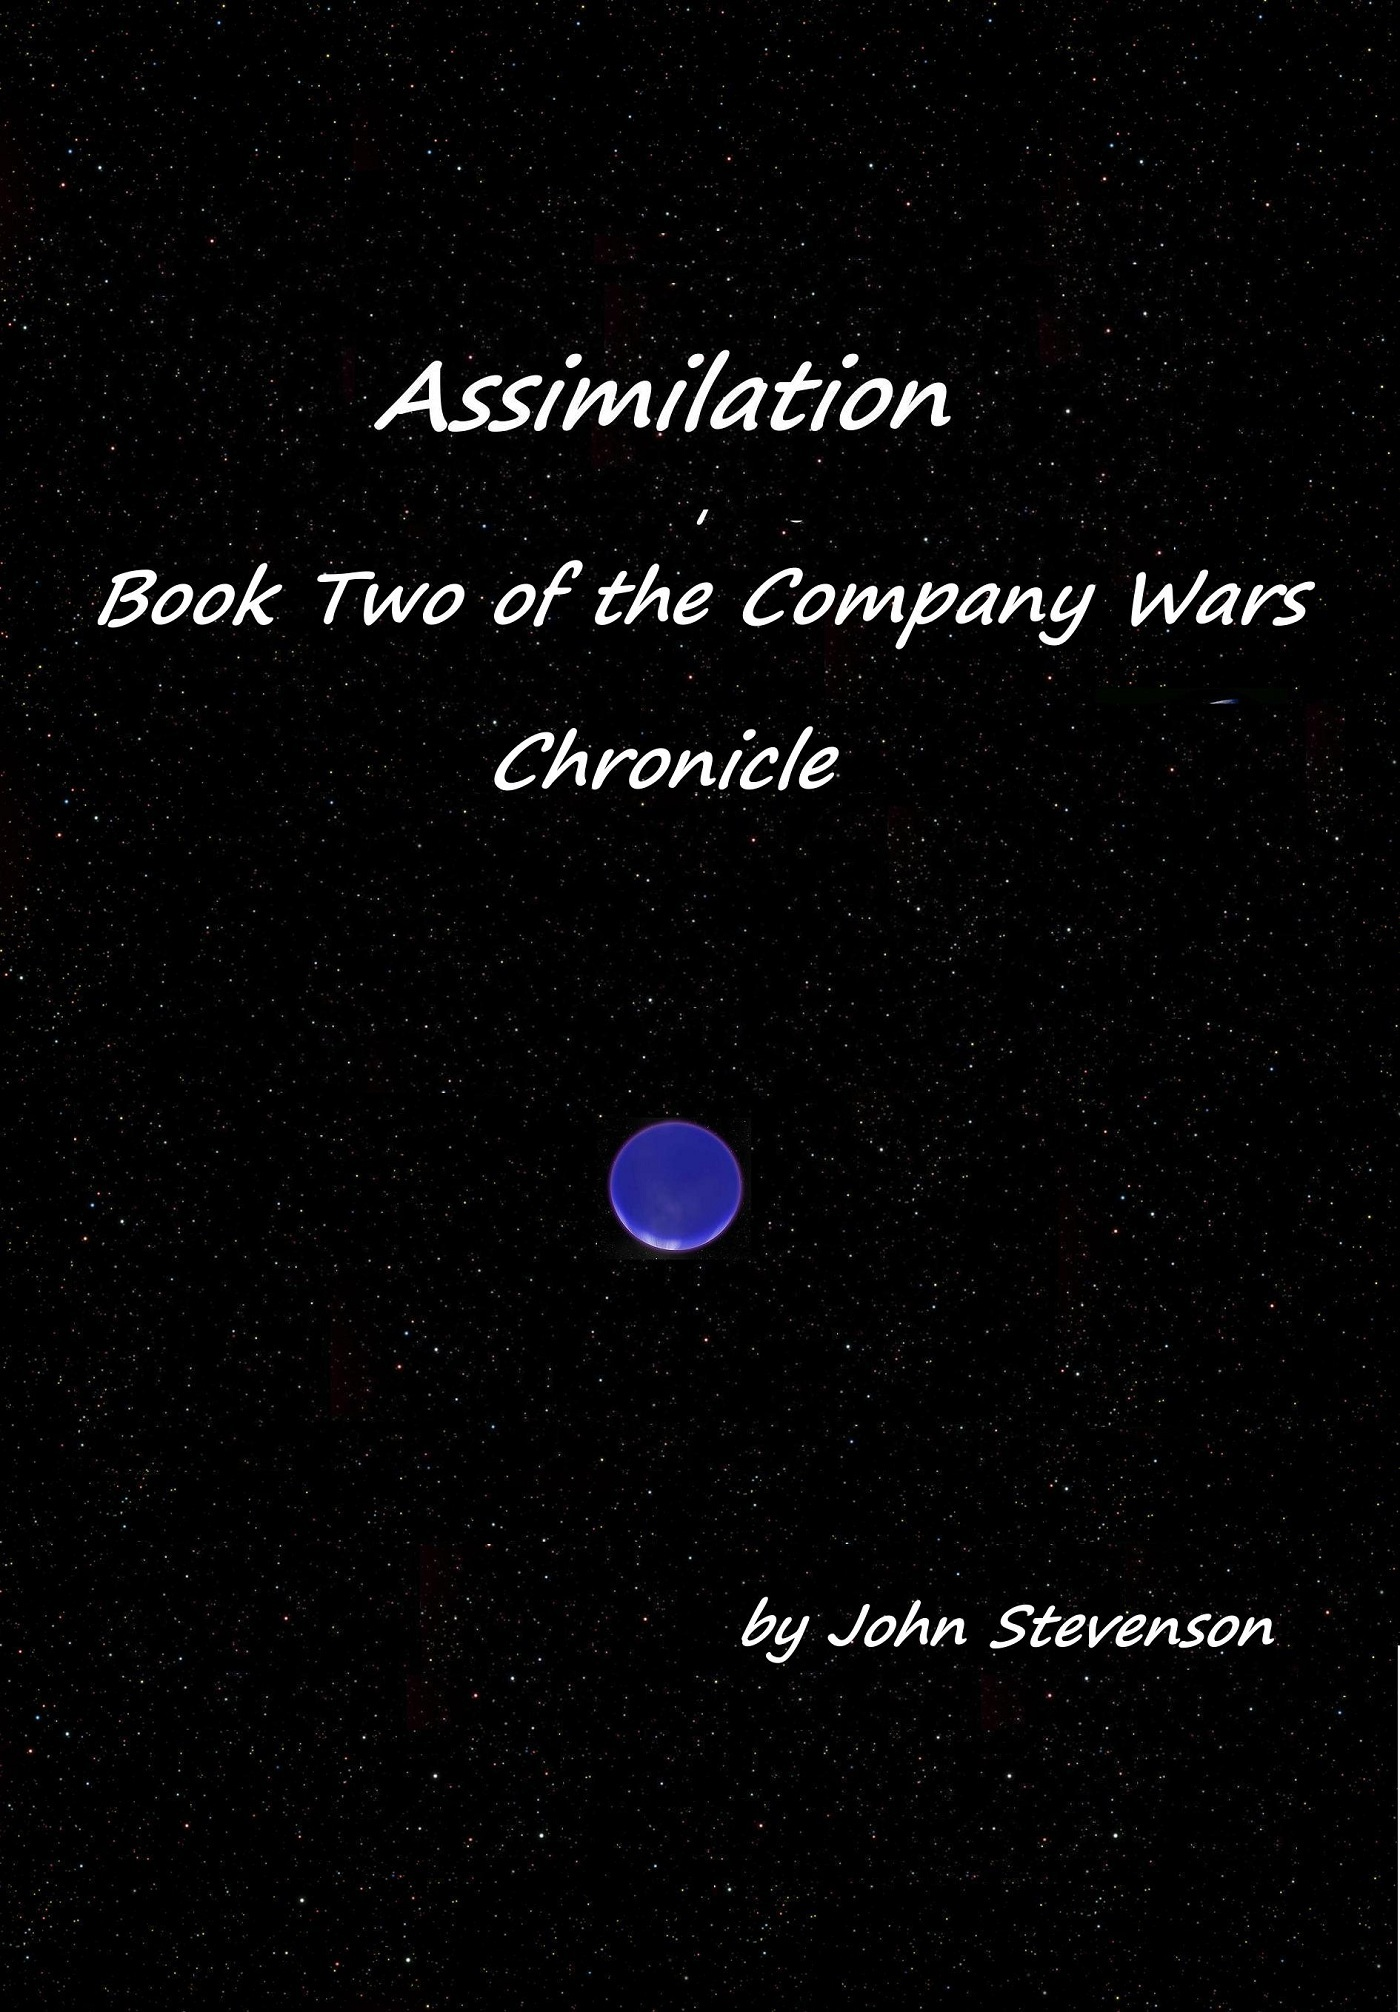 Assimilation: Book Two of the Company Wars Chronicle